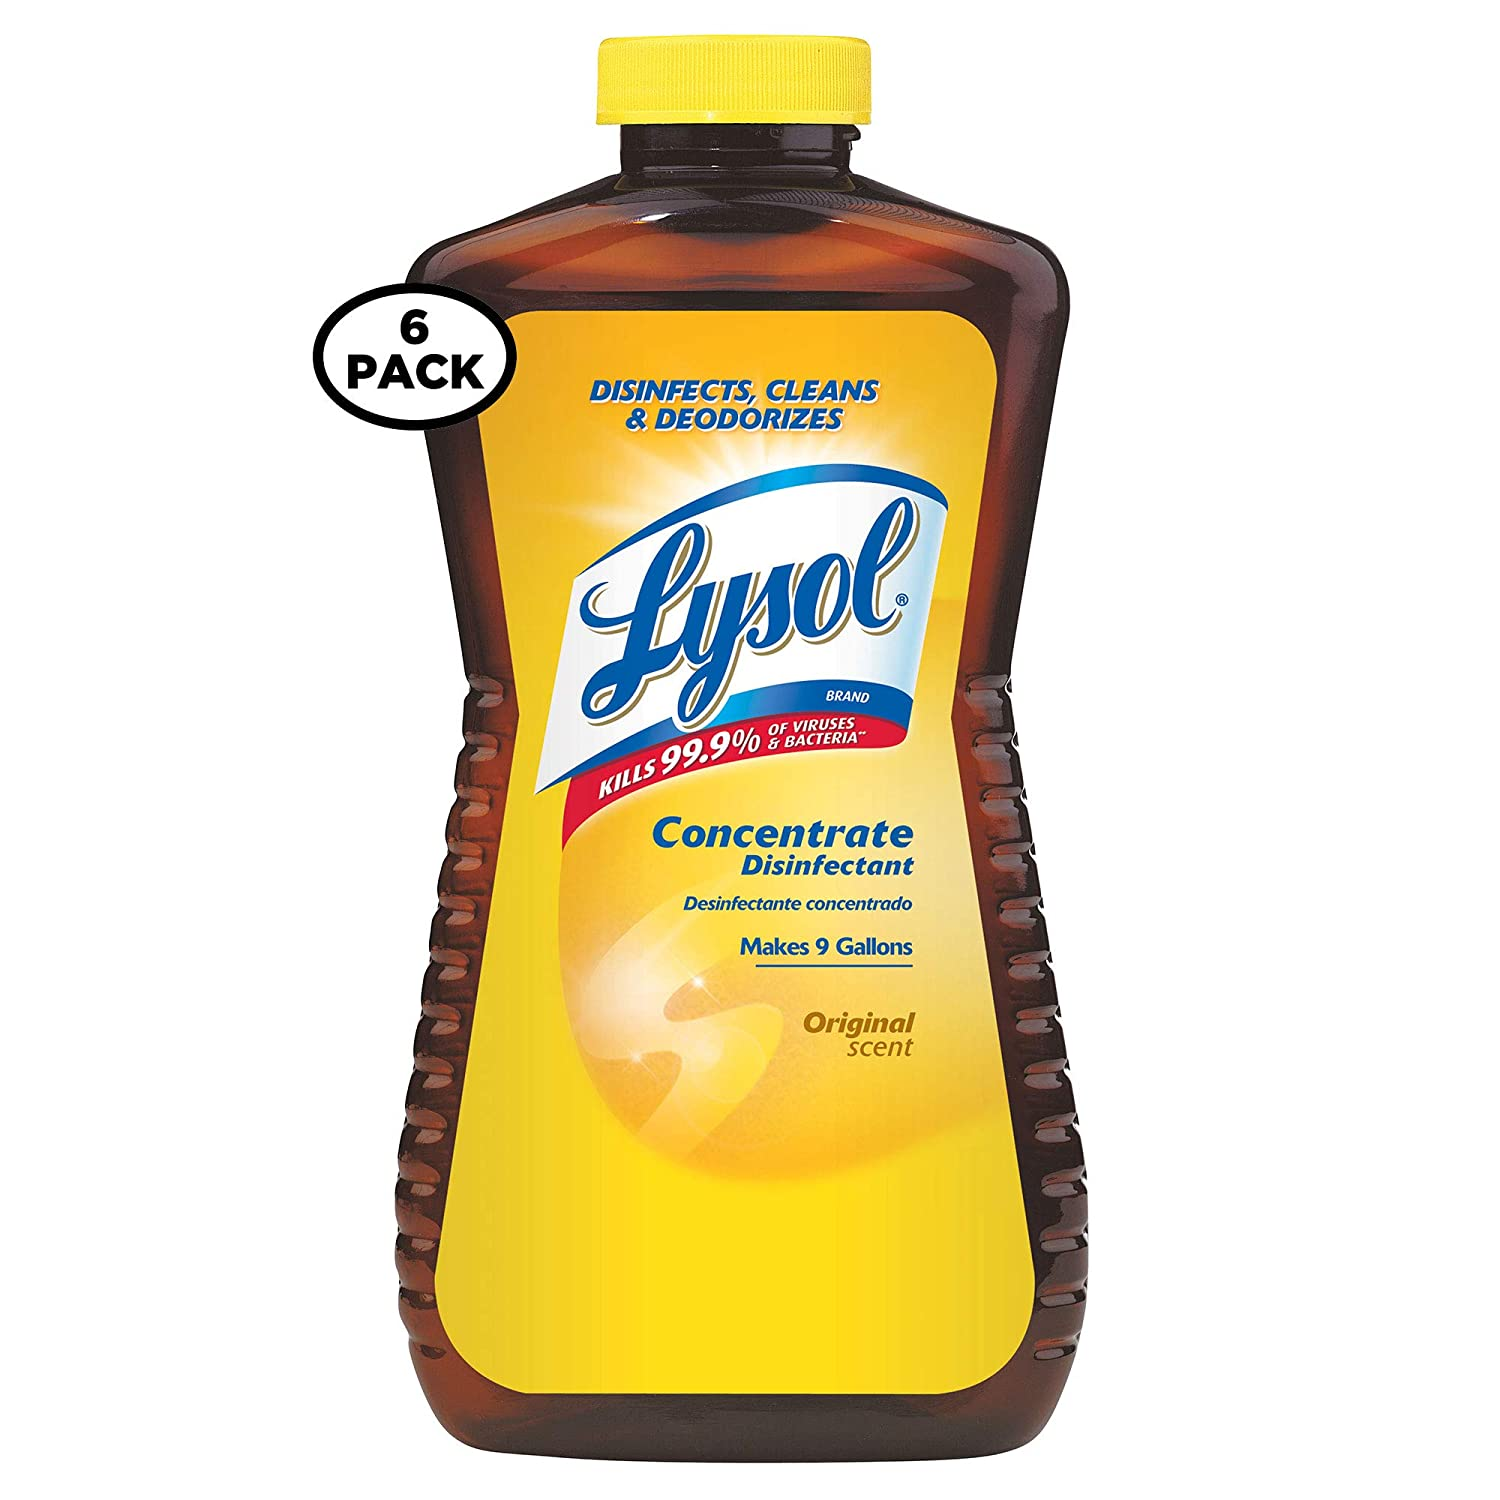 LYSOL Concentrate Disinfectant, Original Scent 12 oz (Pack of 6)